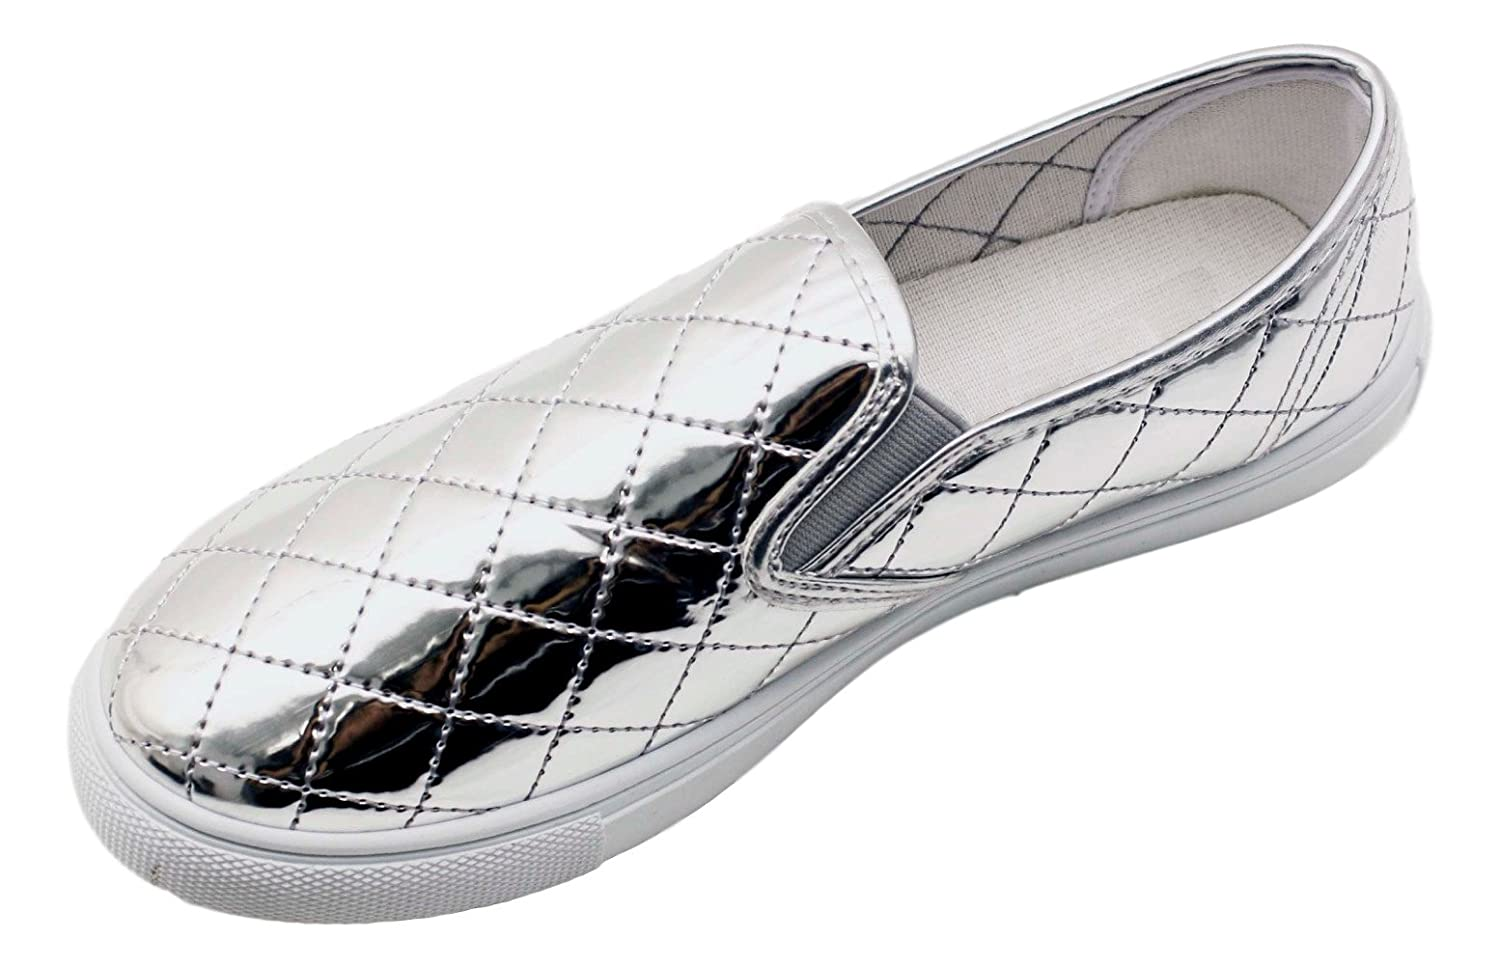 TravelNut Back to School Sale Kenna Classic Slip On Casual Skateboard Sneakers for Women (Assorted Colors) B06Y49CGSS 7 M US|Kenna Quilted Silver